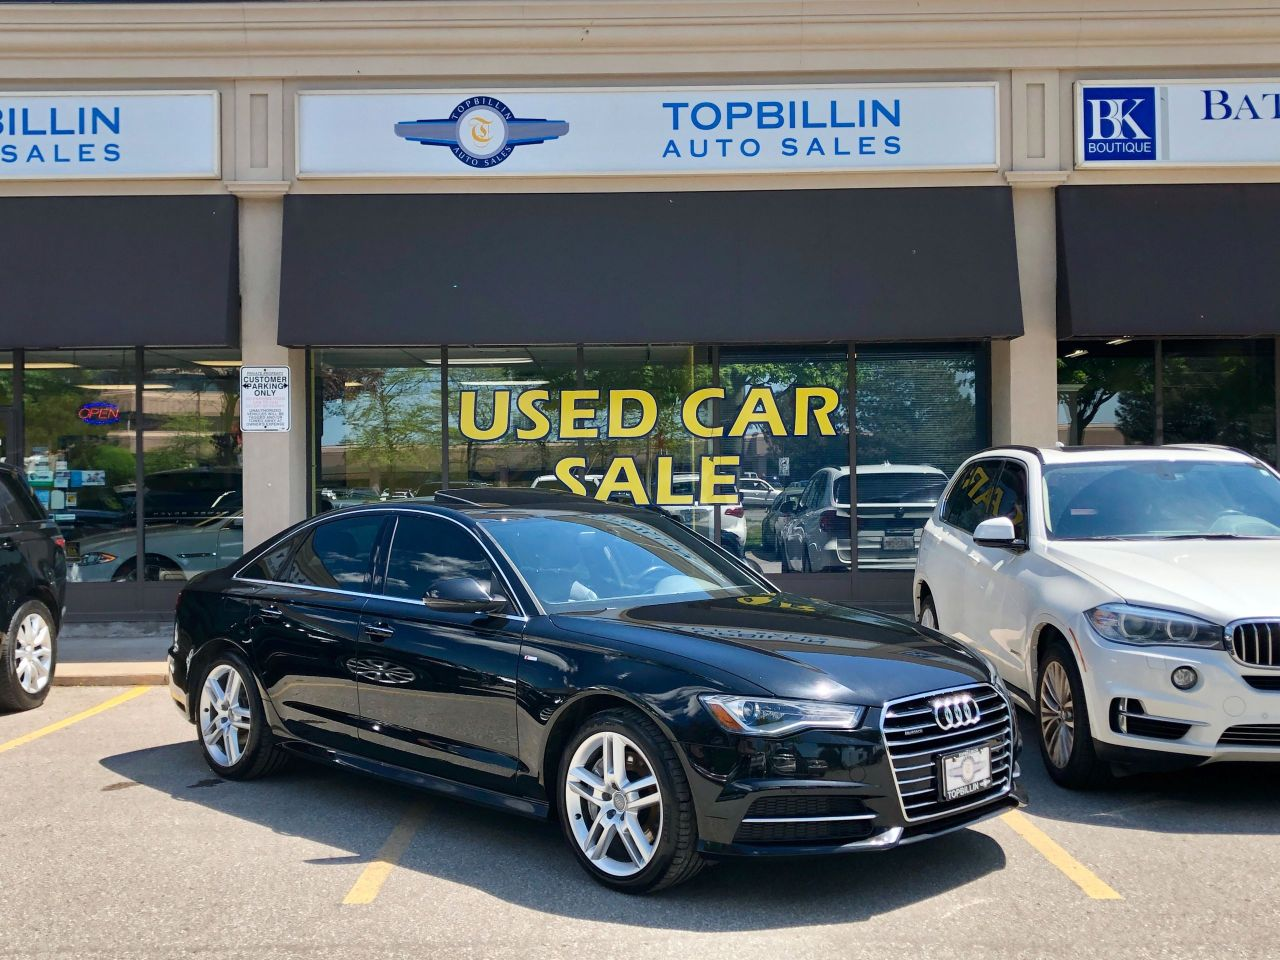 2016 Audi A6 2.0T Technik S Line, Fully Loaded